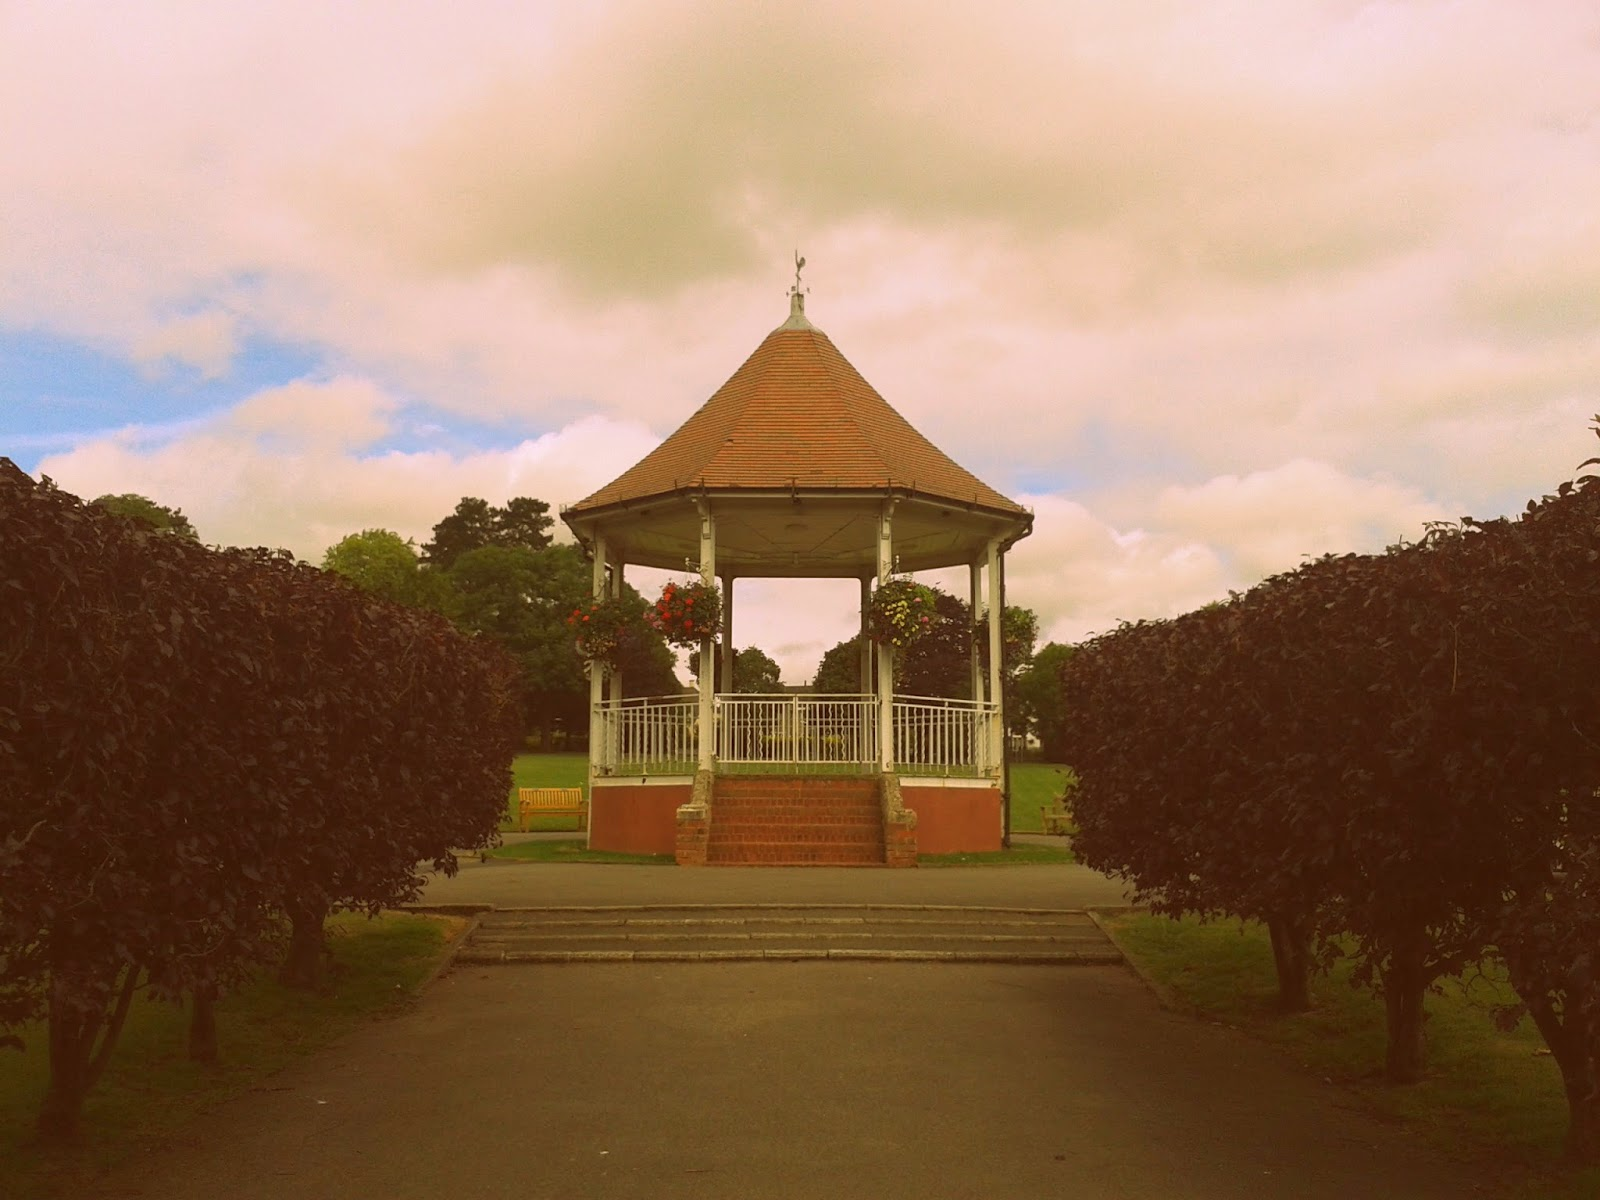 Project 365 day 197 - Bandstand // 76sunflowers